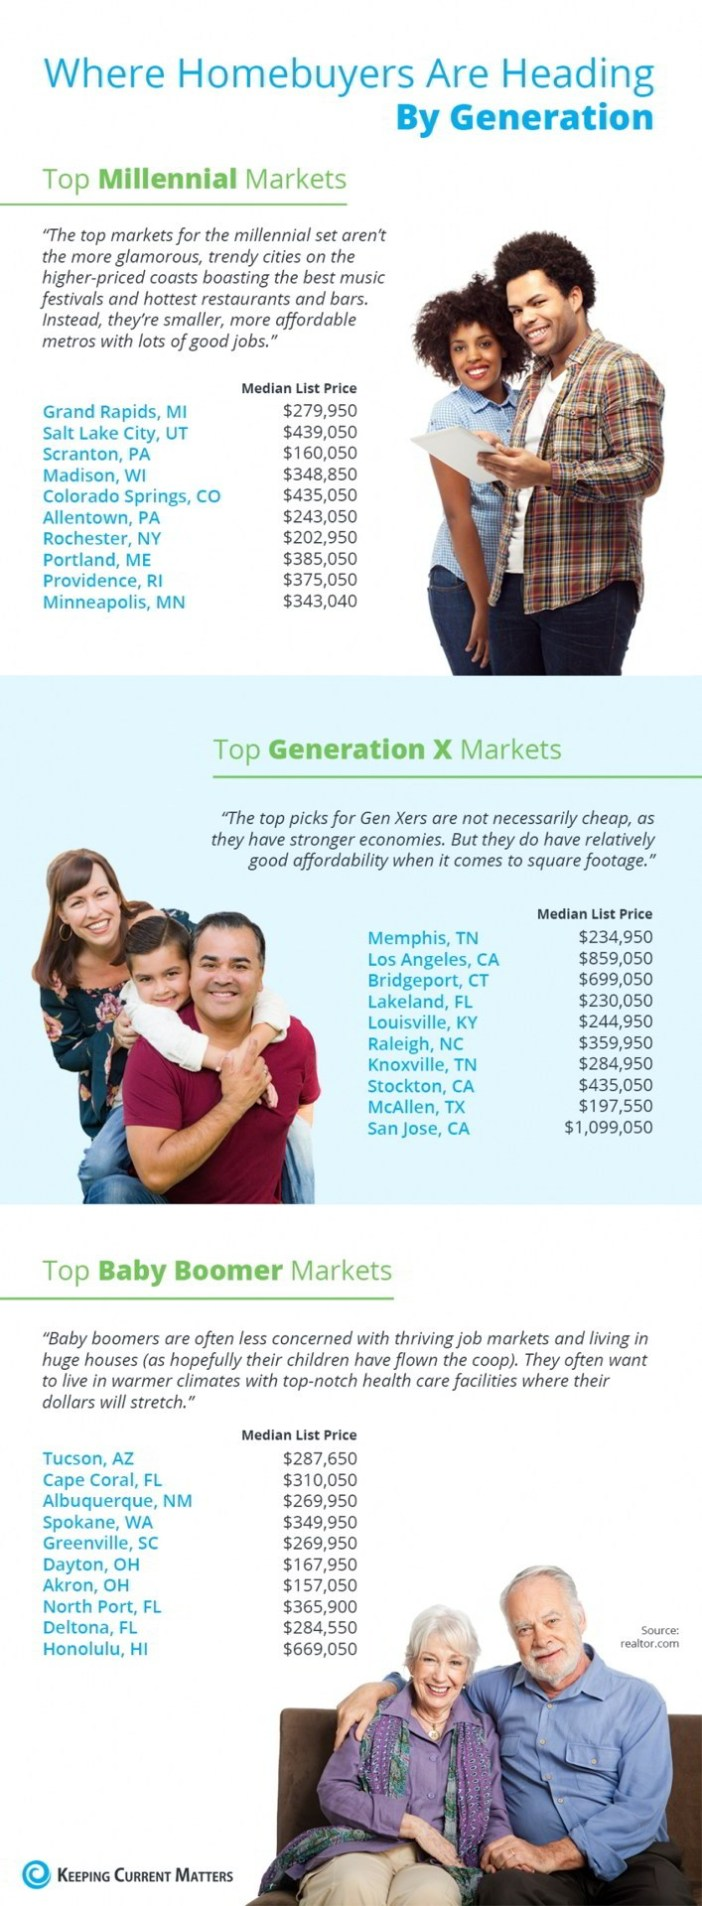 Where Homebuyers are Heading, by Generation